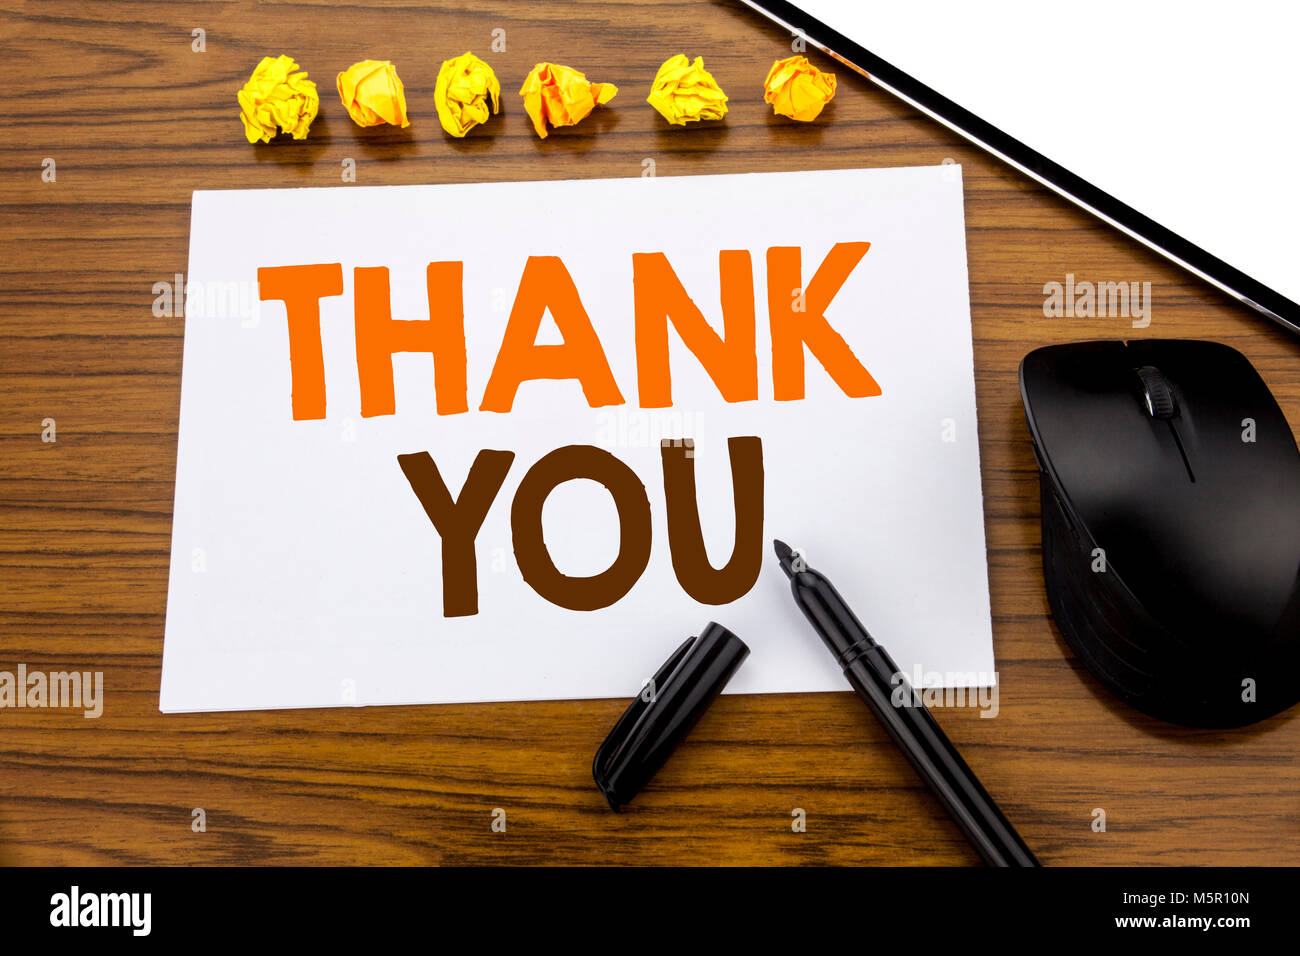 Conceptual hand writing text showing Thank You. Business concept for Gratitude Thanks written on sticky note paper - Stock Image